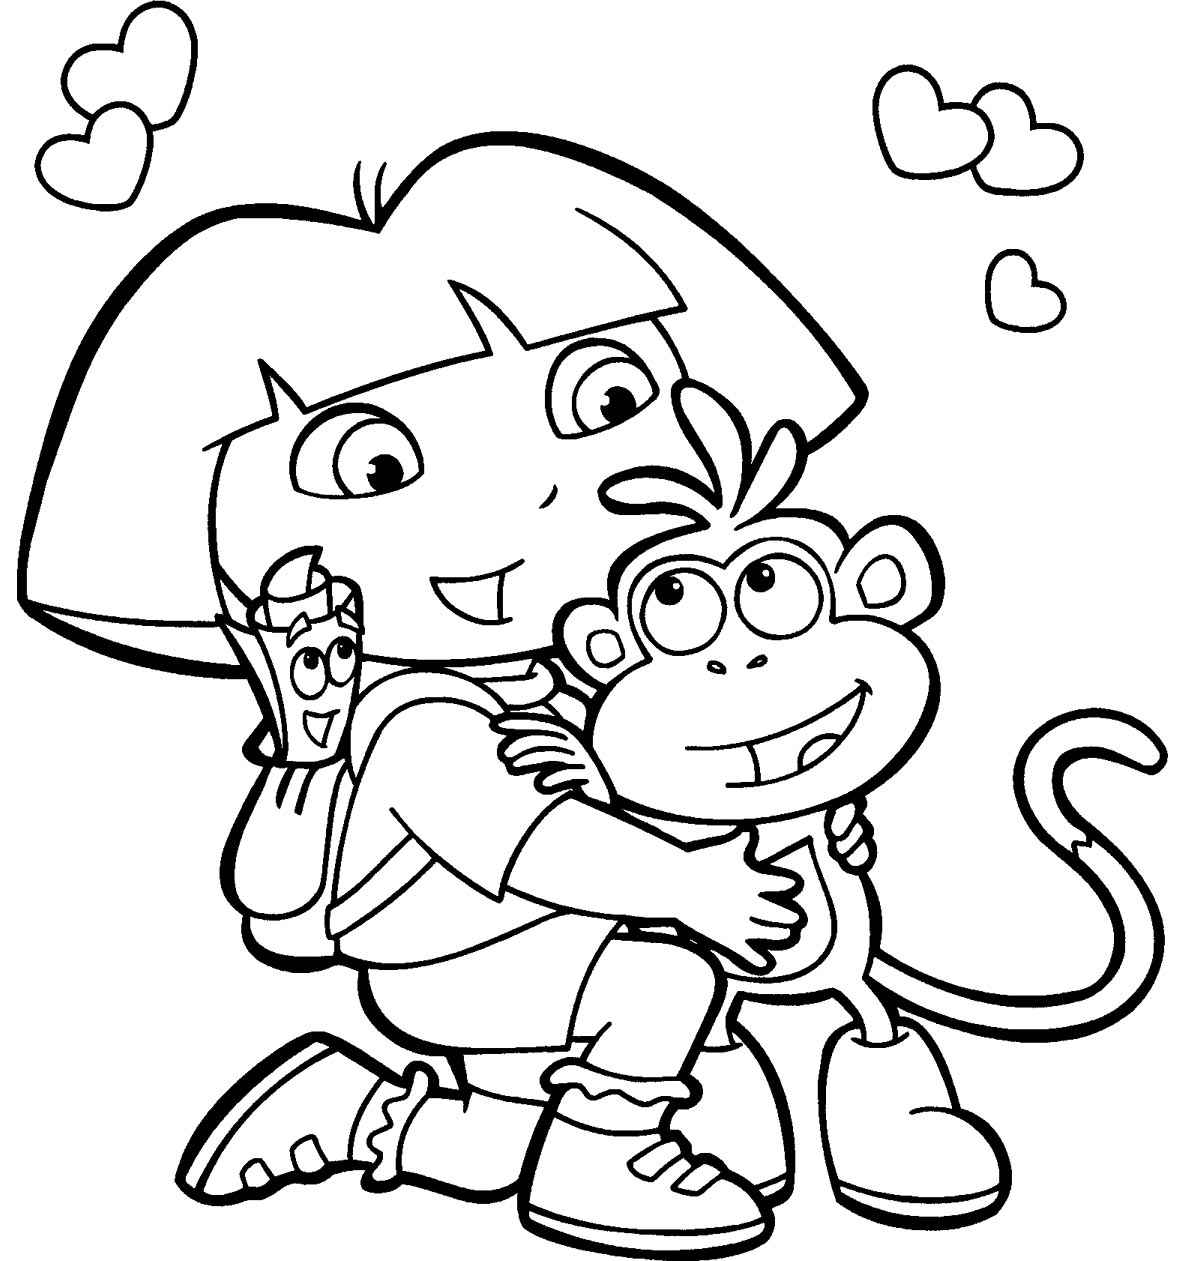 dora the explorer printable coloring pages for free